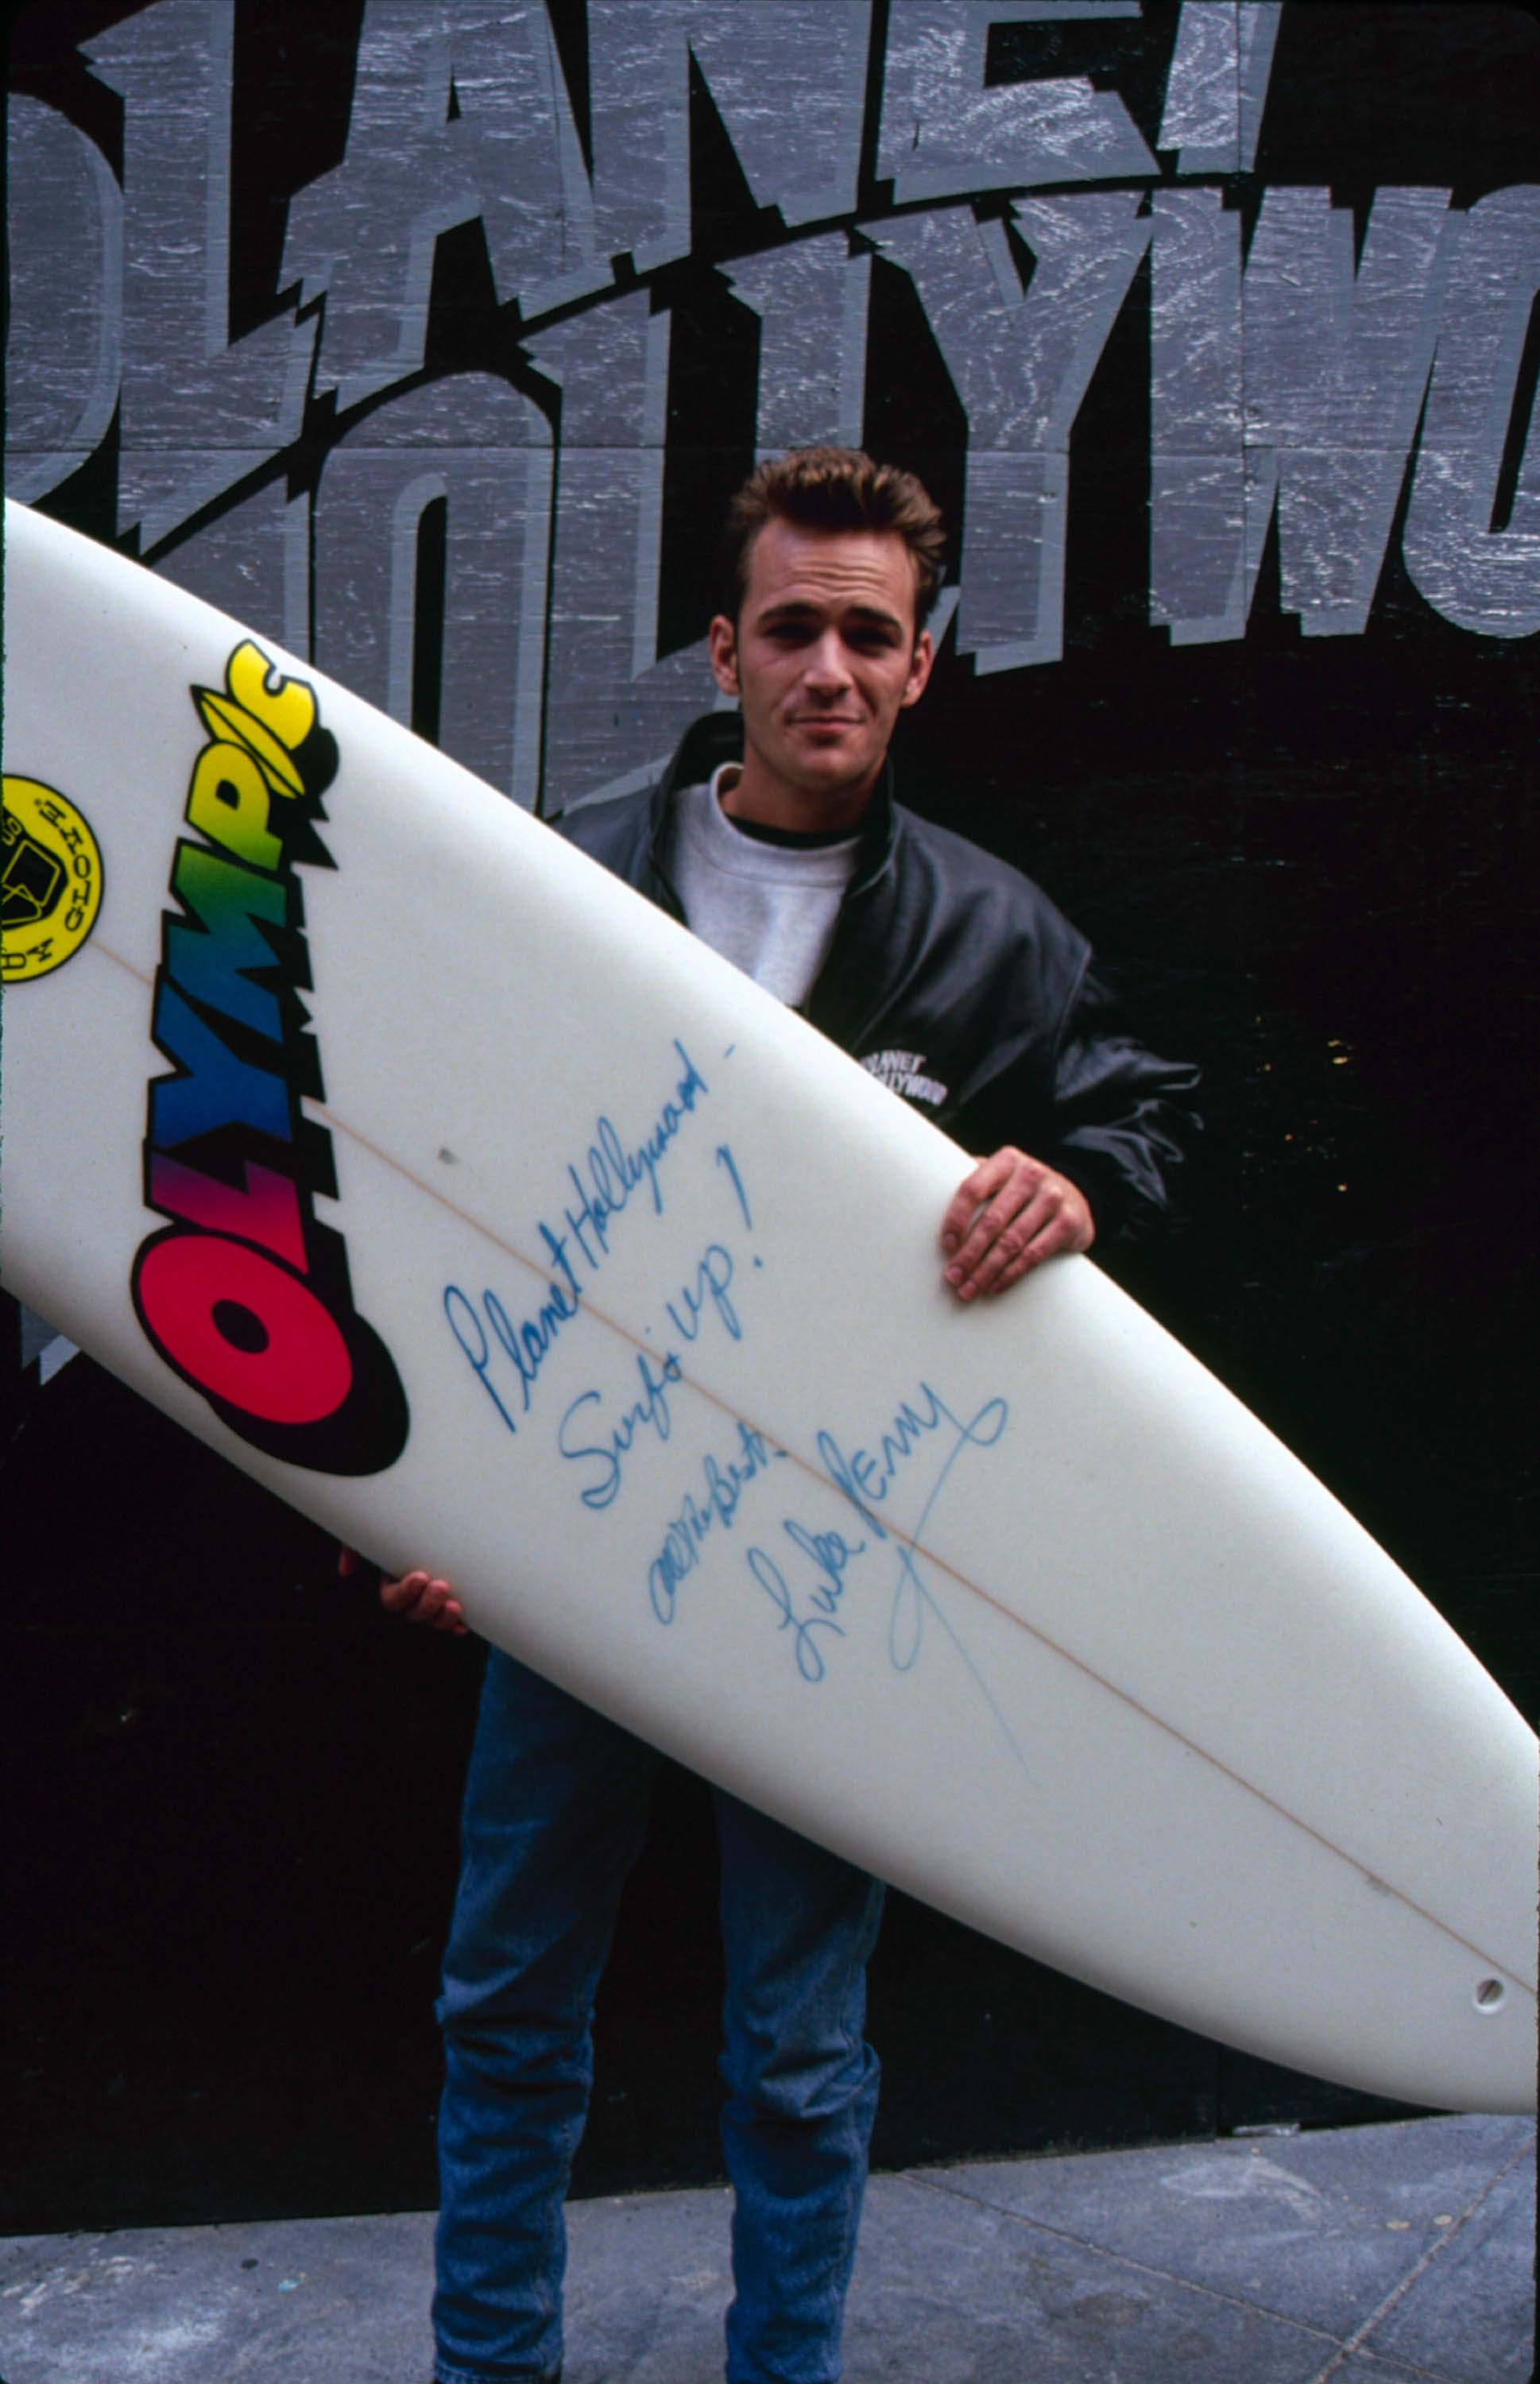 Perry holds an autographed surfboard in 1990.